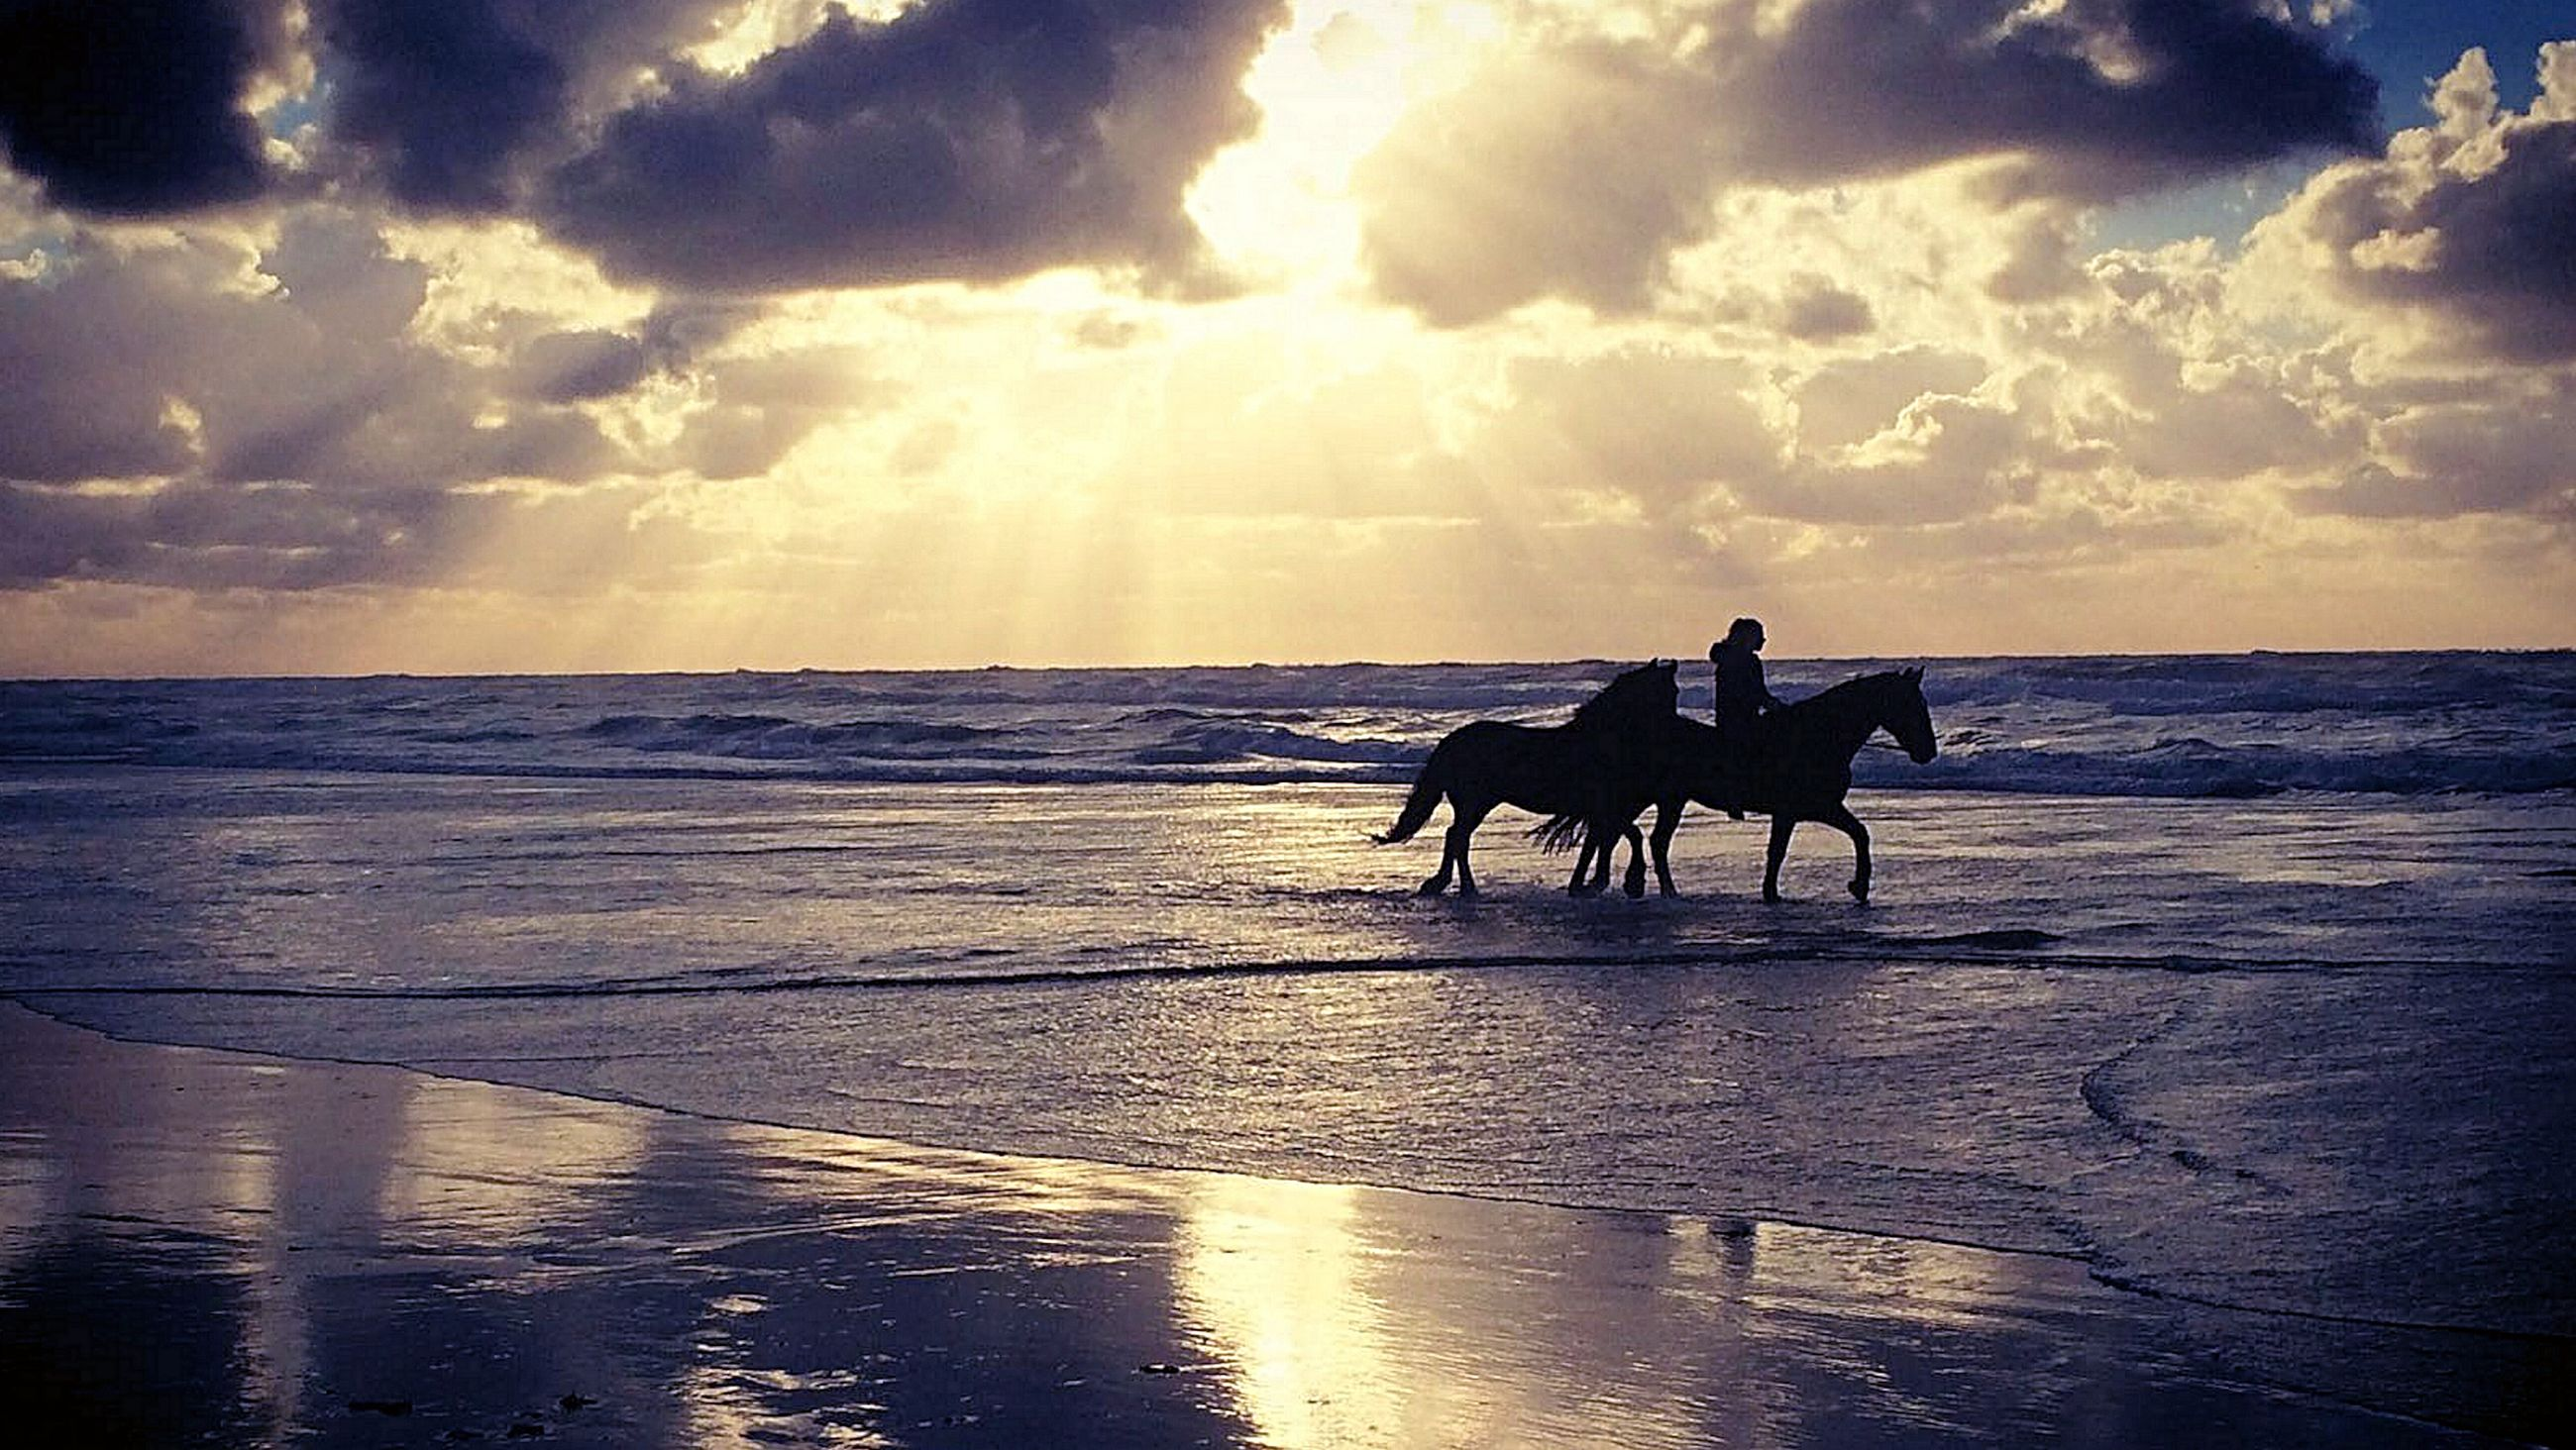 sea, horizon over water, water, sunset, sky, cloud - sky, beach, reflection, beauty in nature, nature, silhouette, scenics, tranquil scene, domestic animals, tranquility, sun, sand, men, outdoors, mammal, wave, real people, day, people